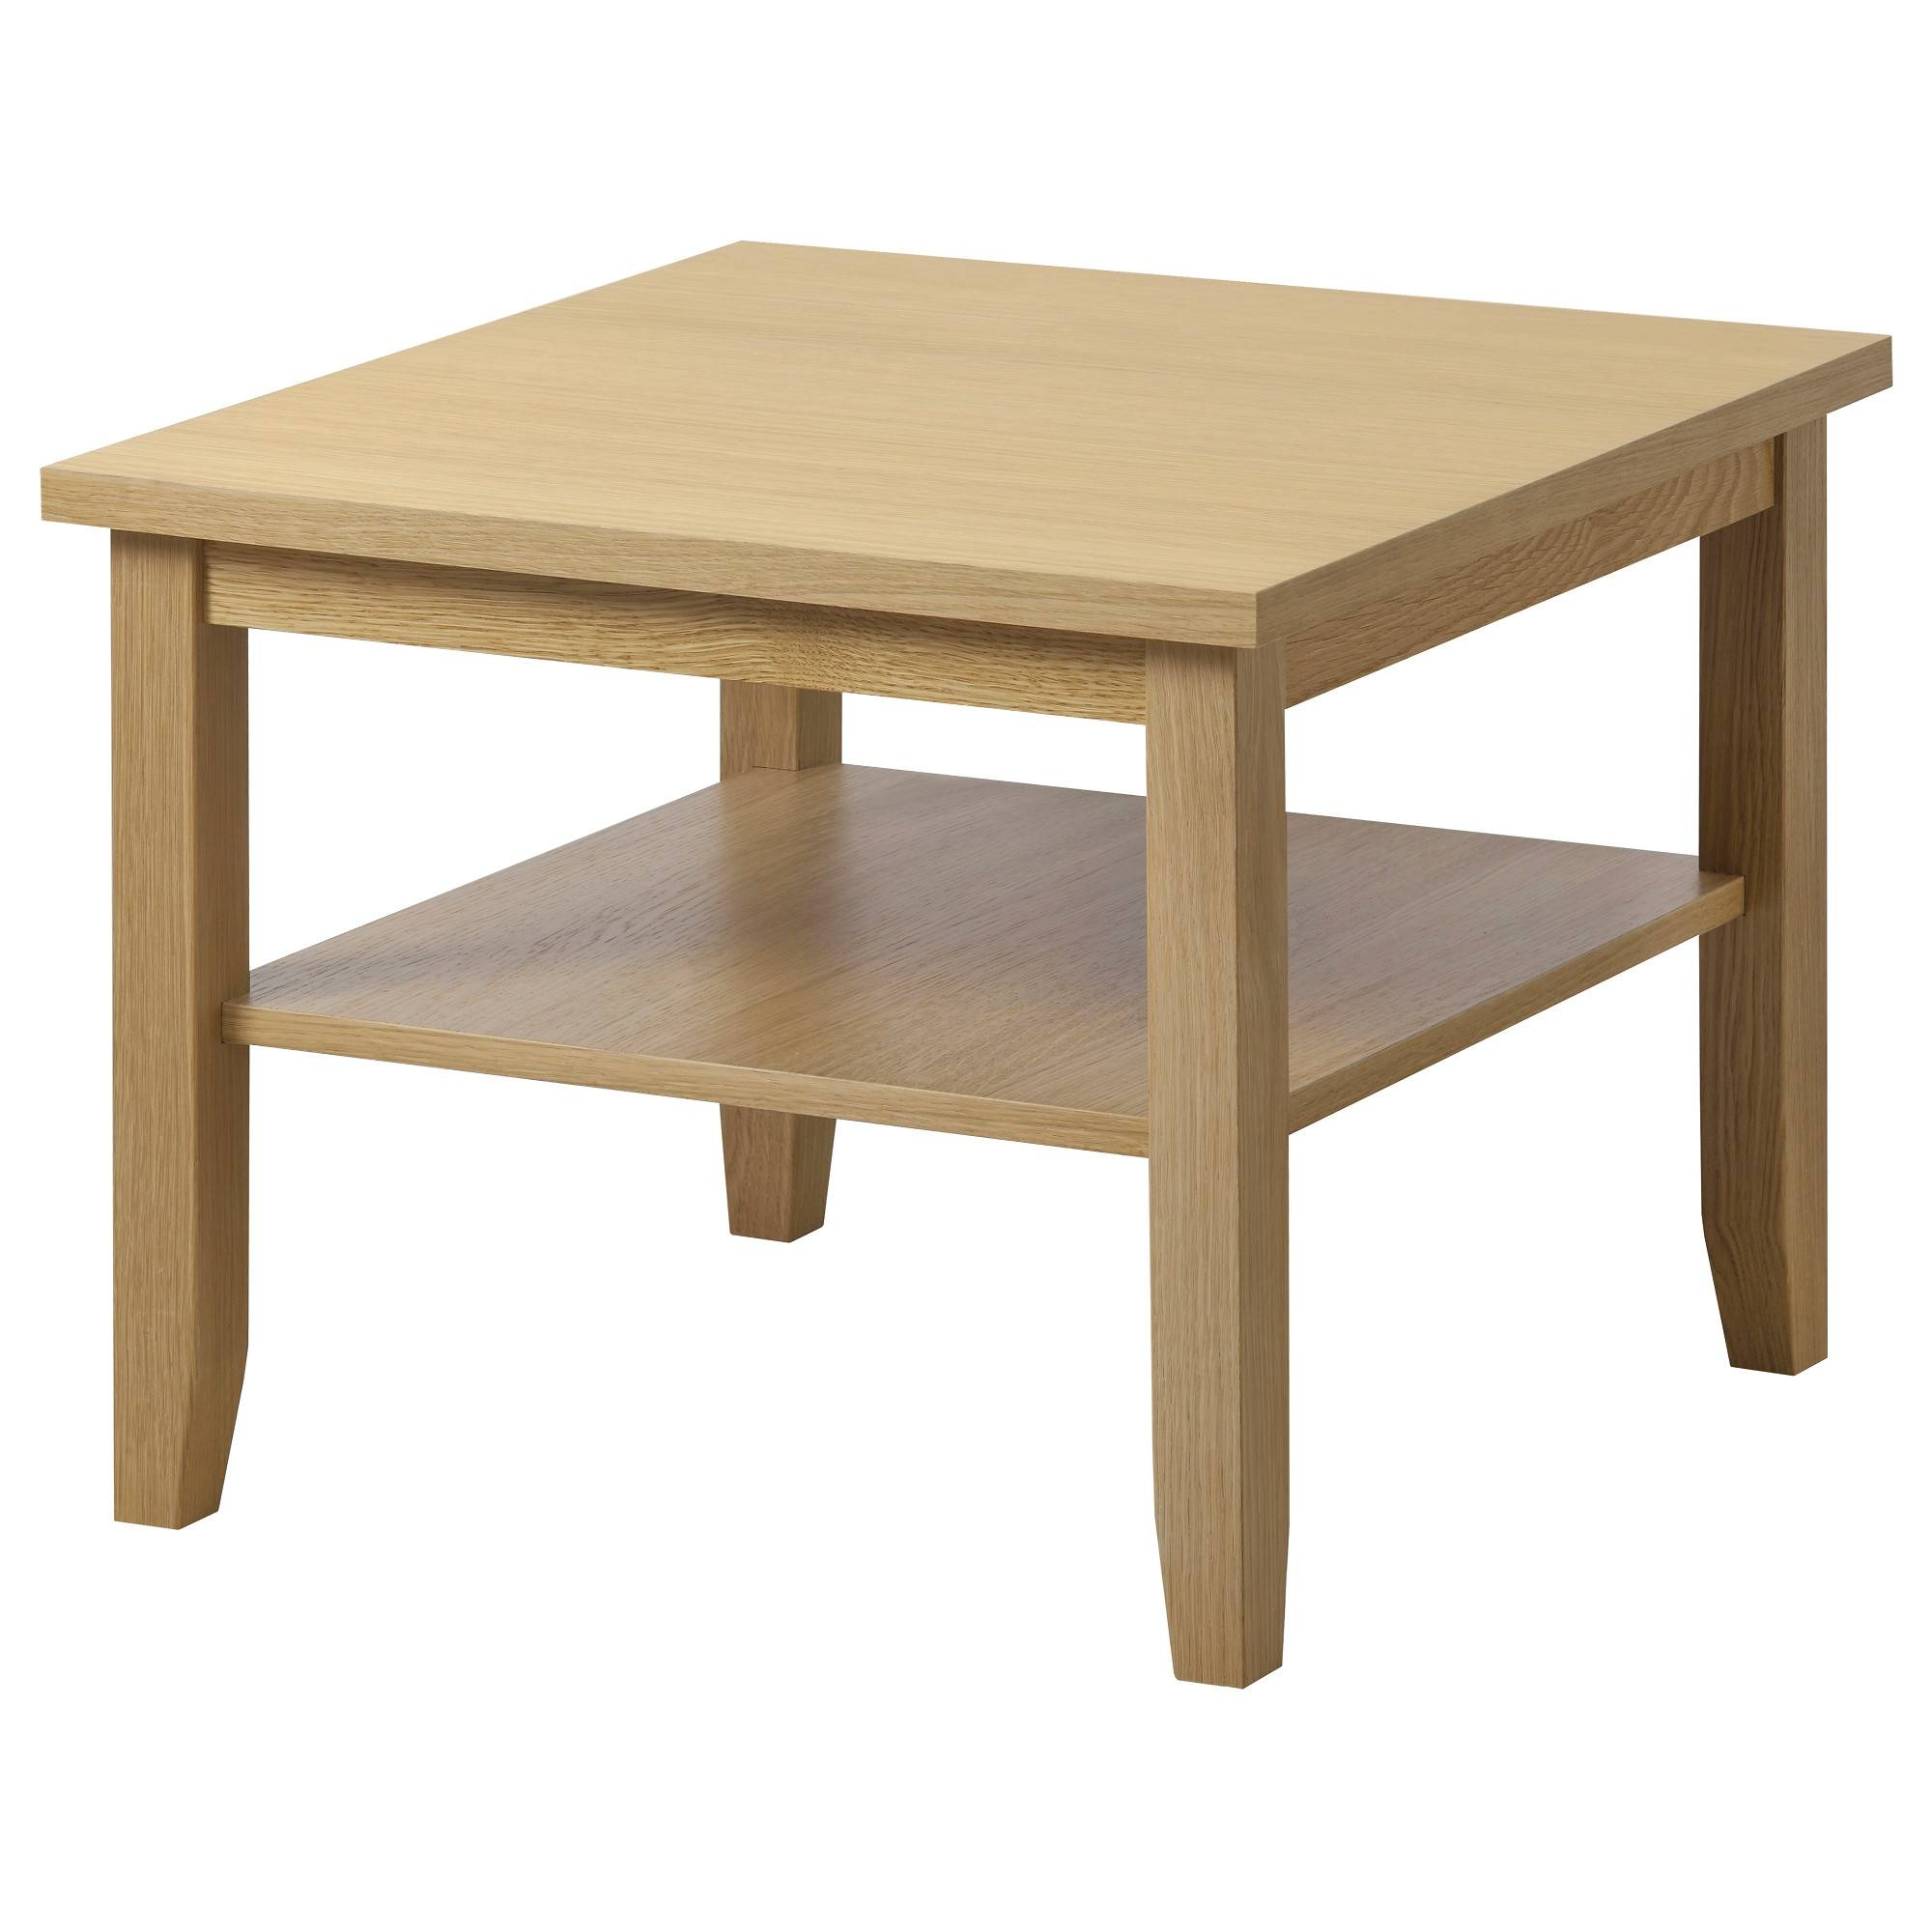 Square Oak Effect Coffee Table | Coffee Tables Decoration throughout Oak Coffee Table Sets (Image 29 of 30)